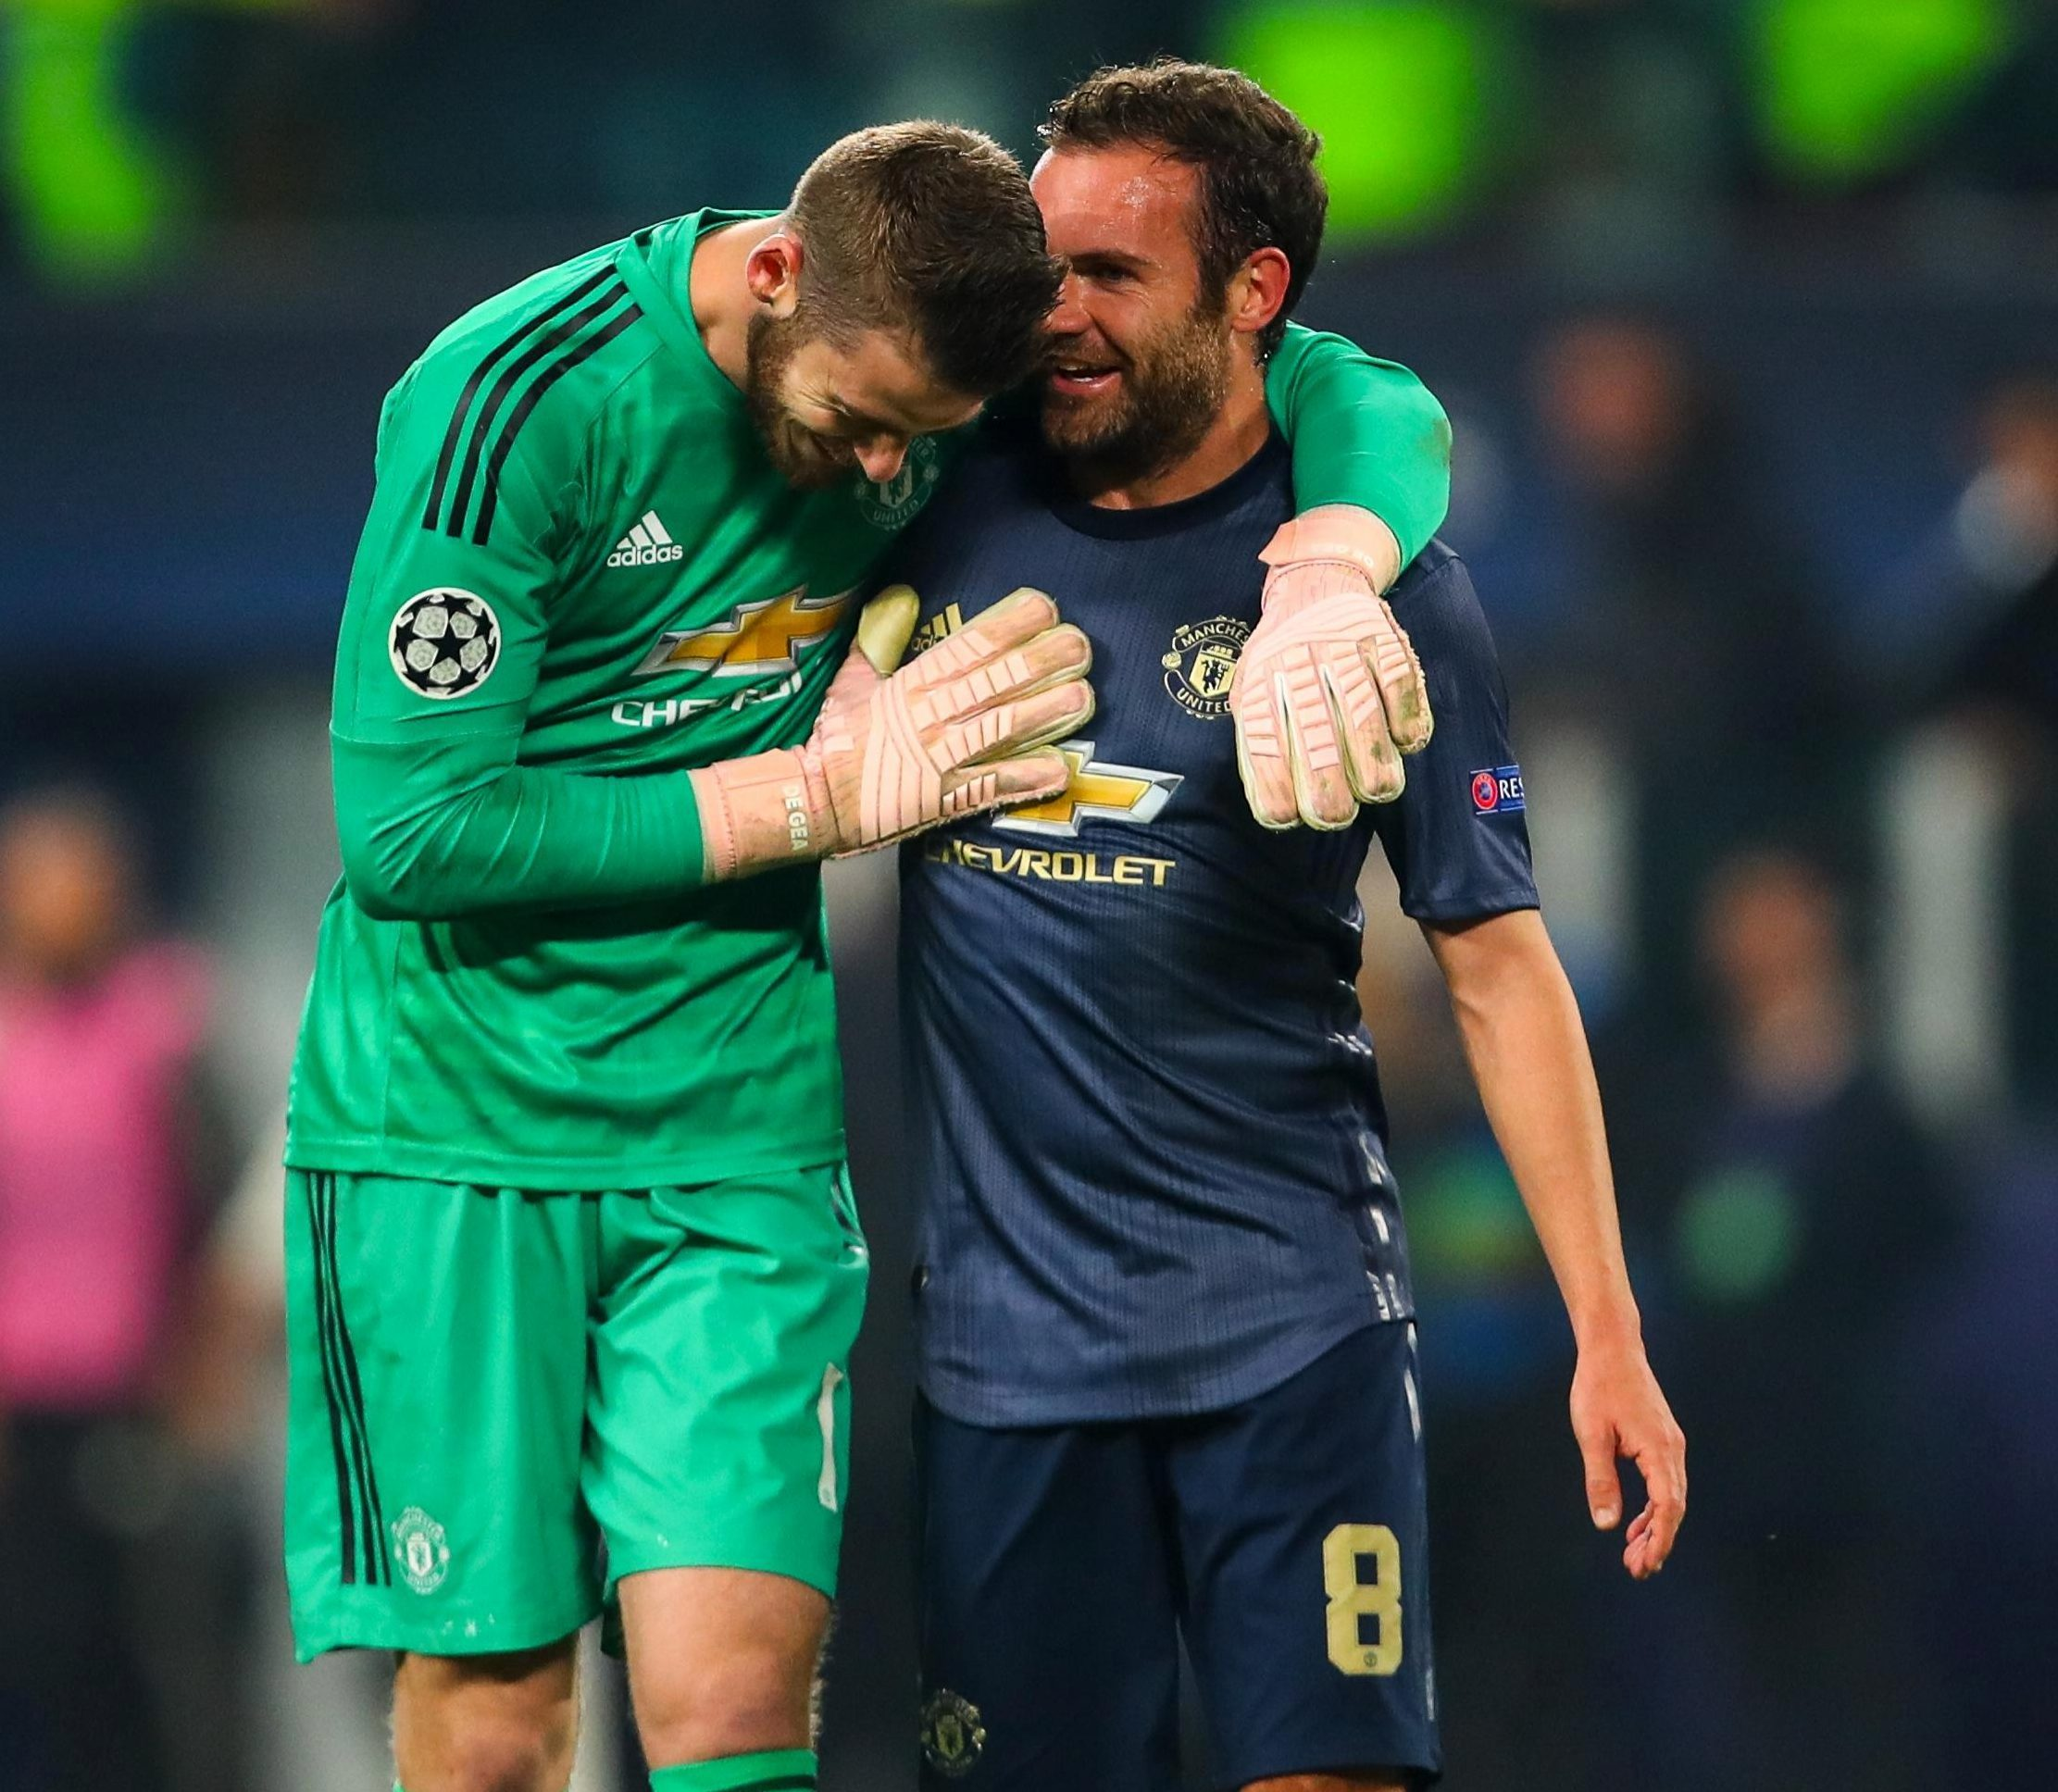 David De Gea, who made a number of fine saves, celebrates the win with his compatriot and scorer Juan Mata